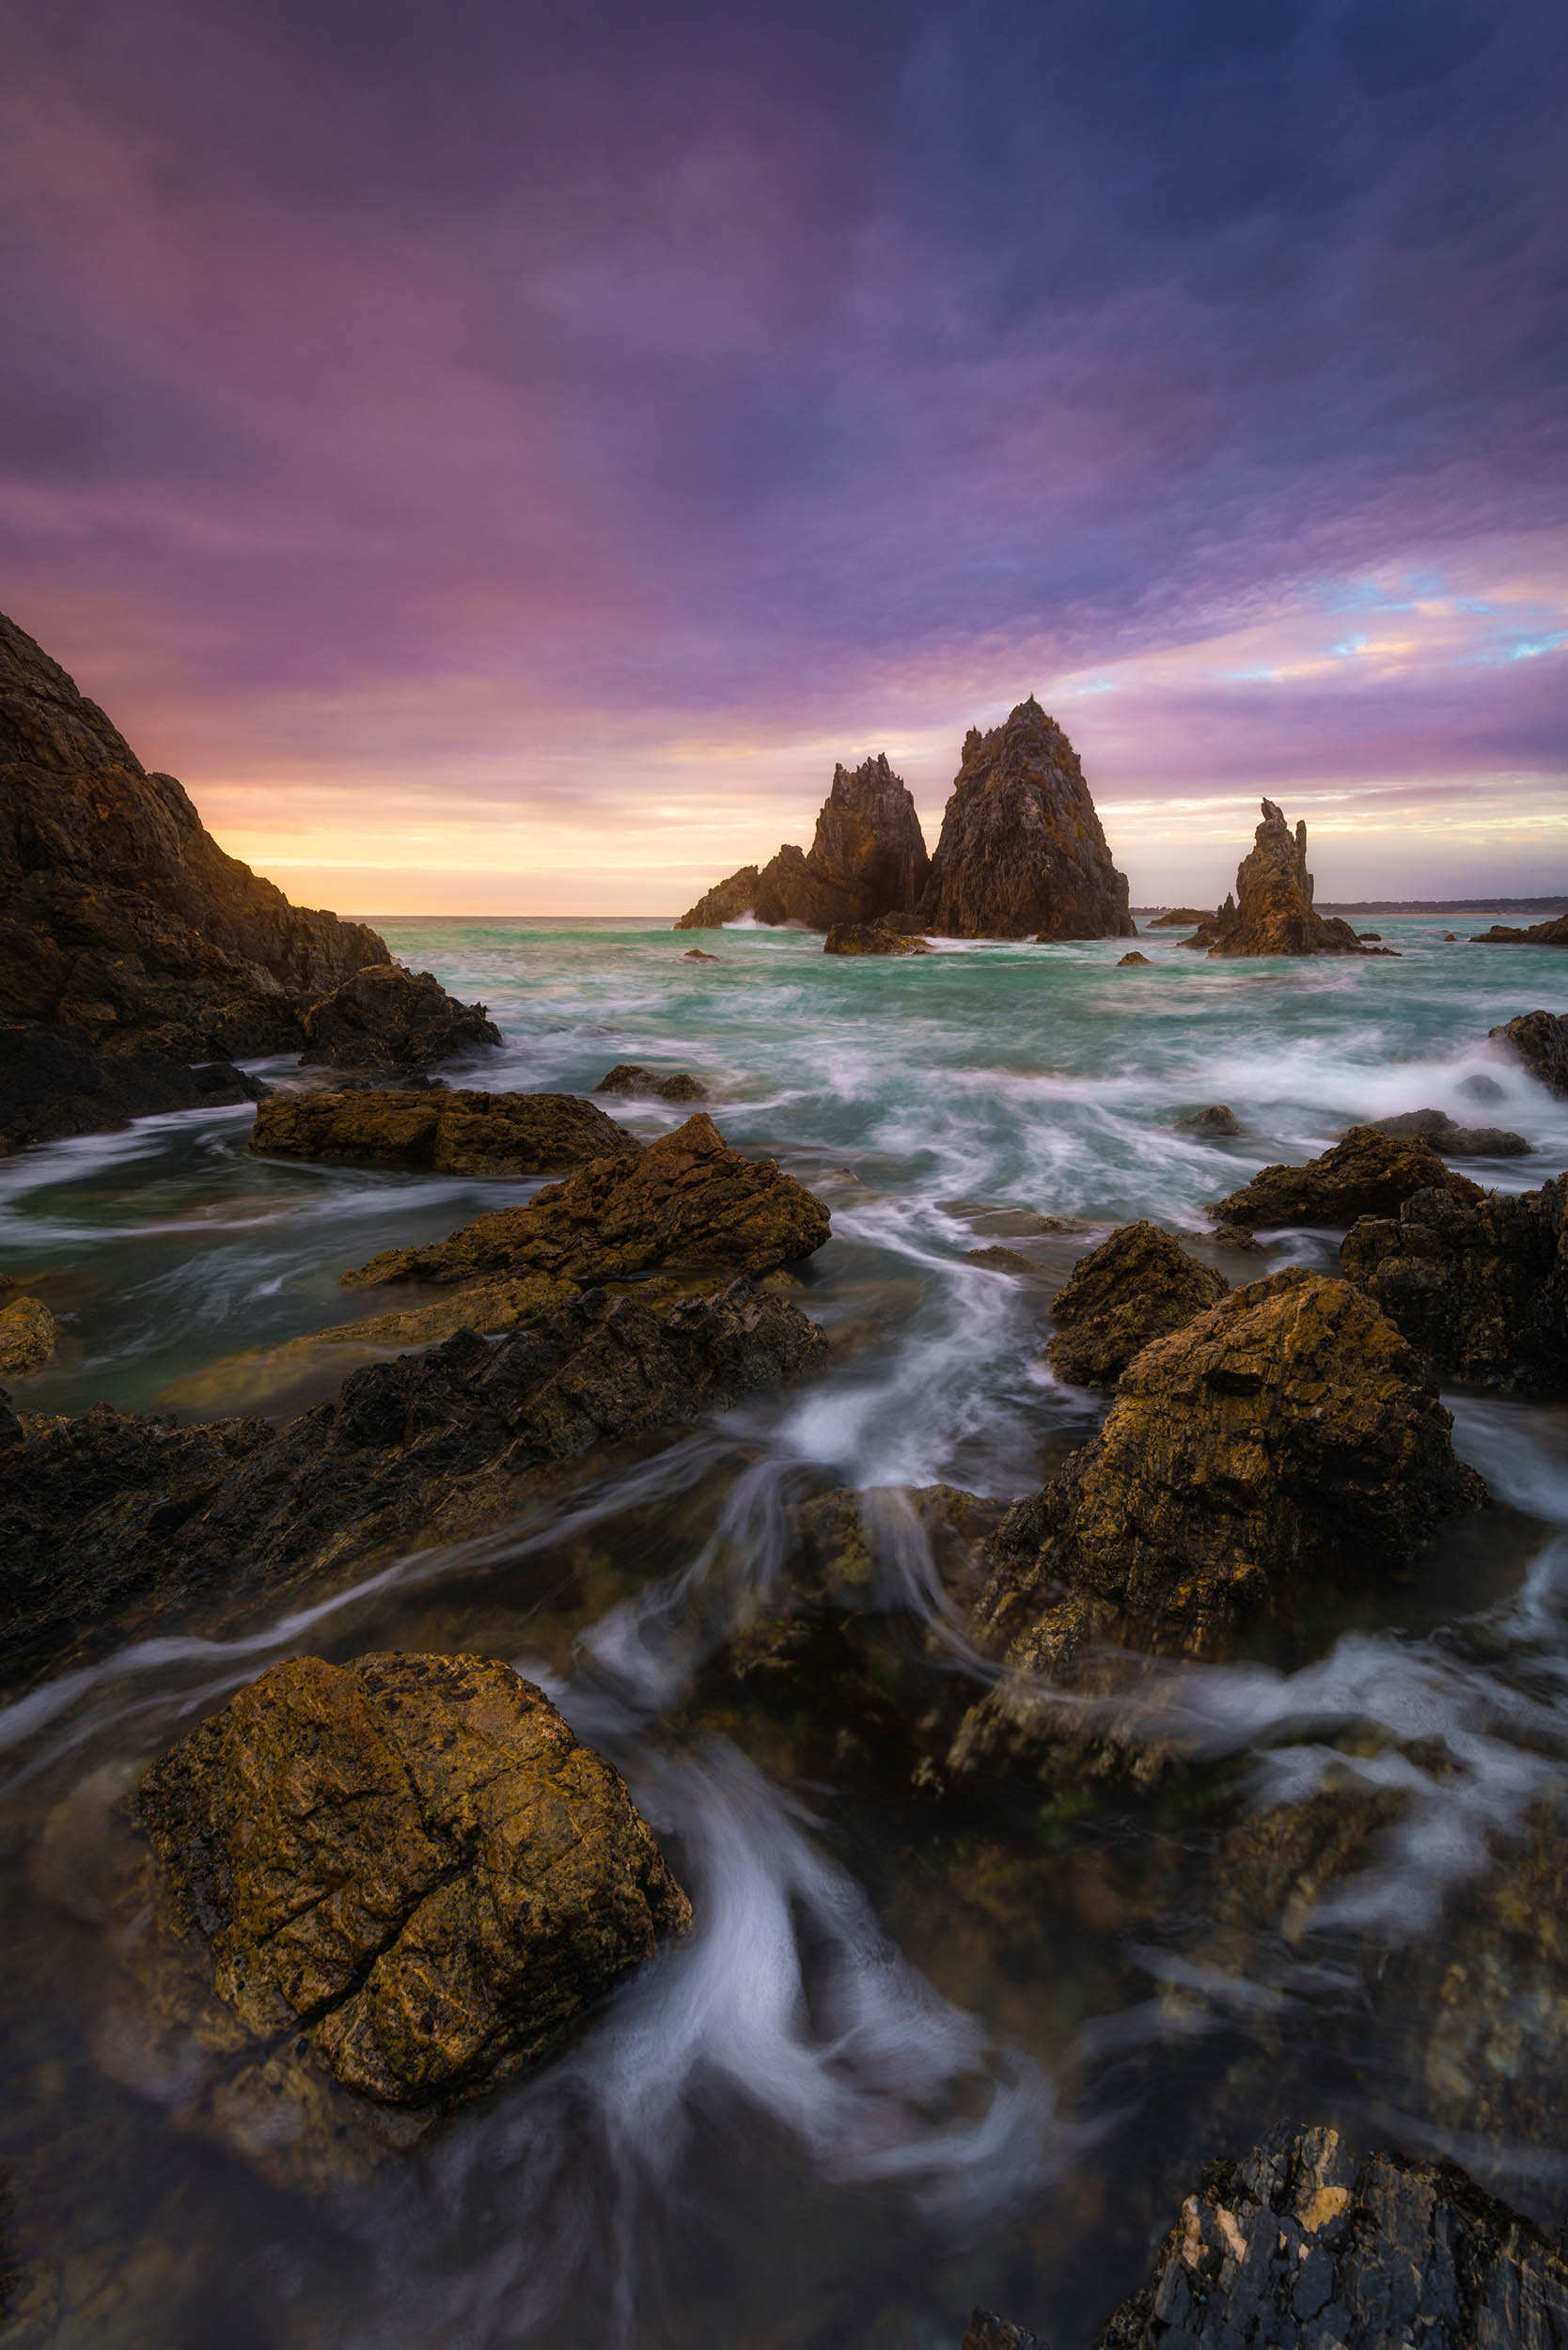 Trinity Peaks - Camel Rock, Bermagui - New South Wales